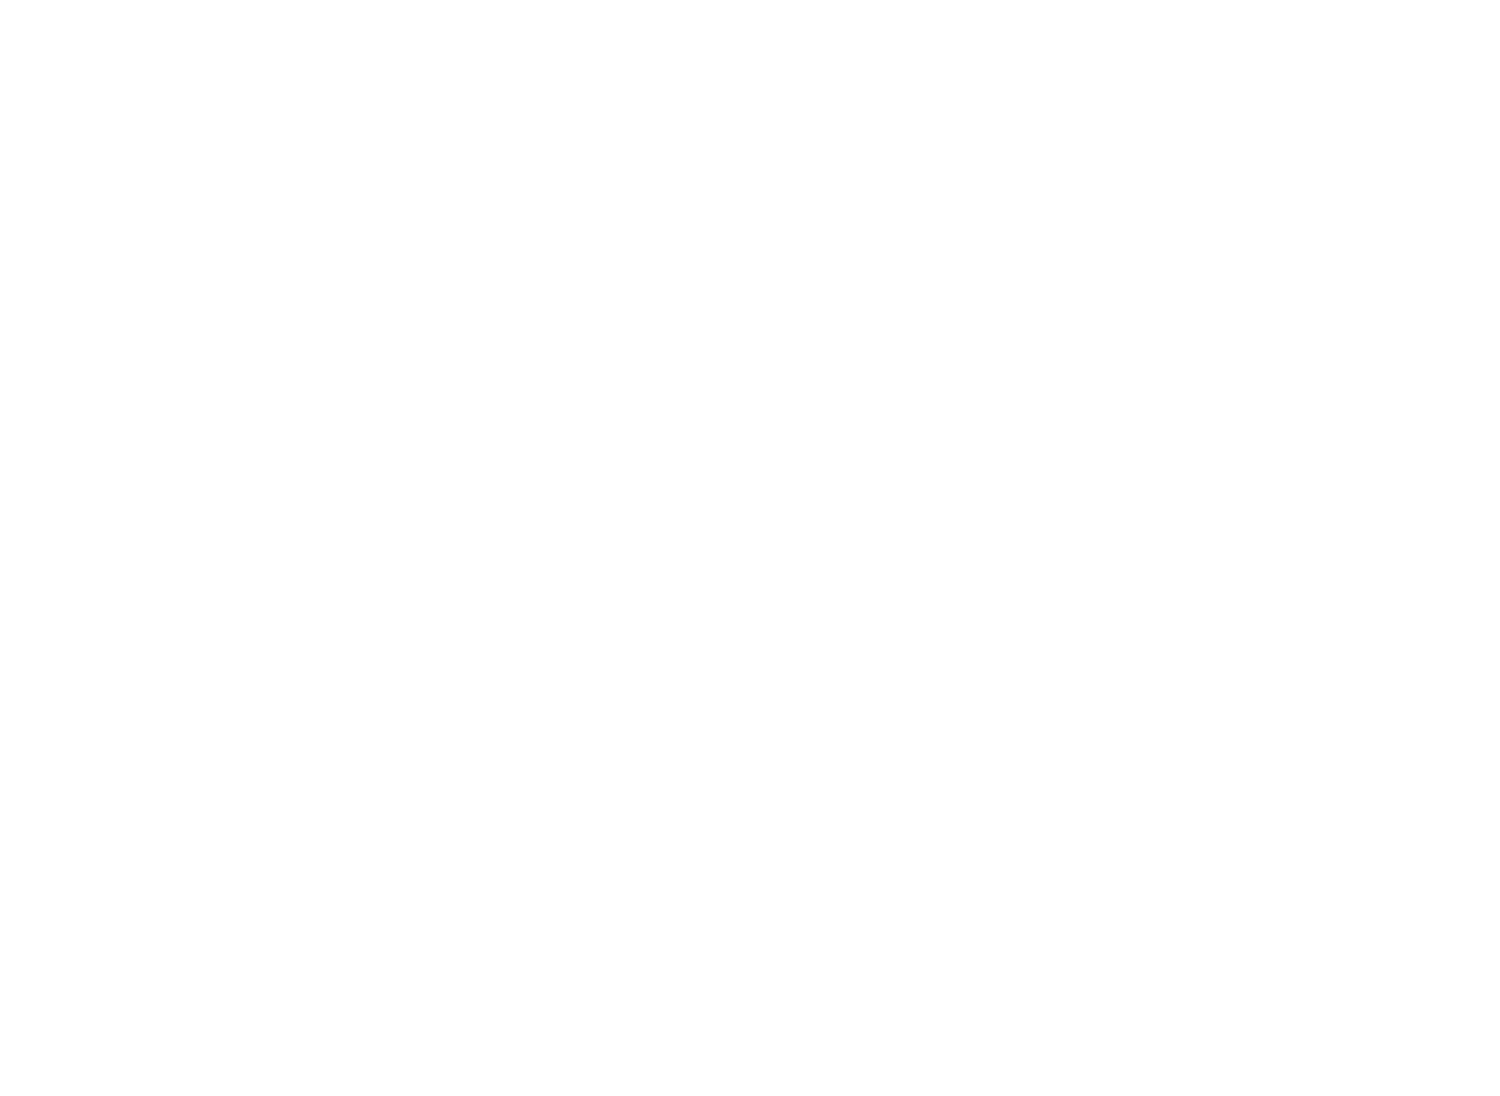 Vineyard Church Great Falls